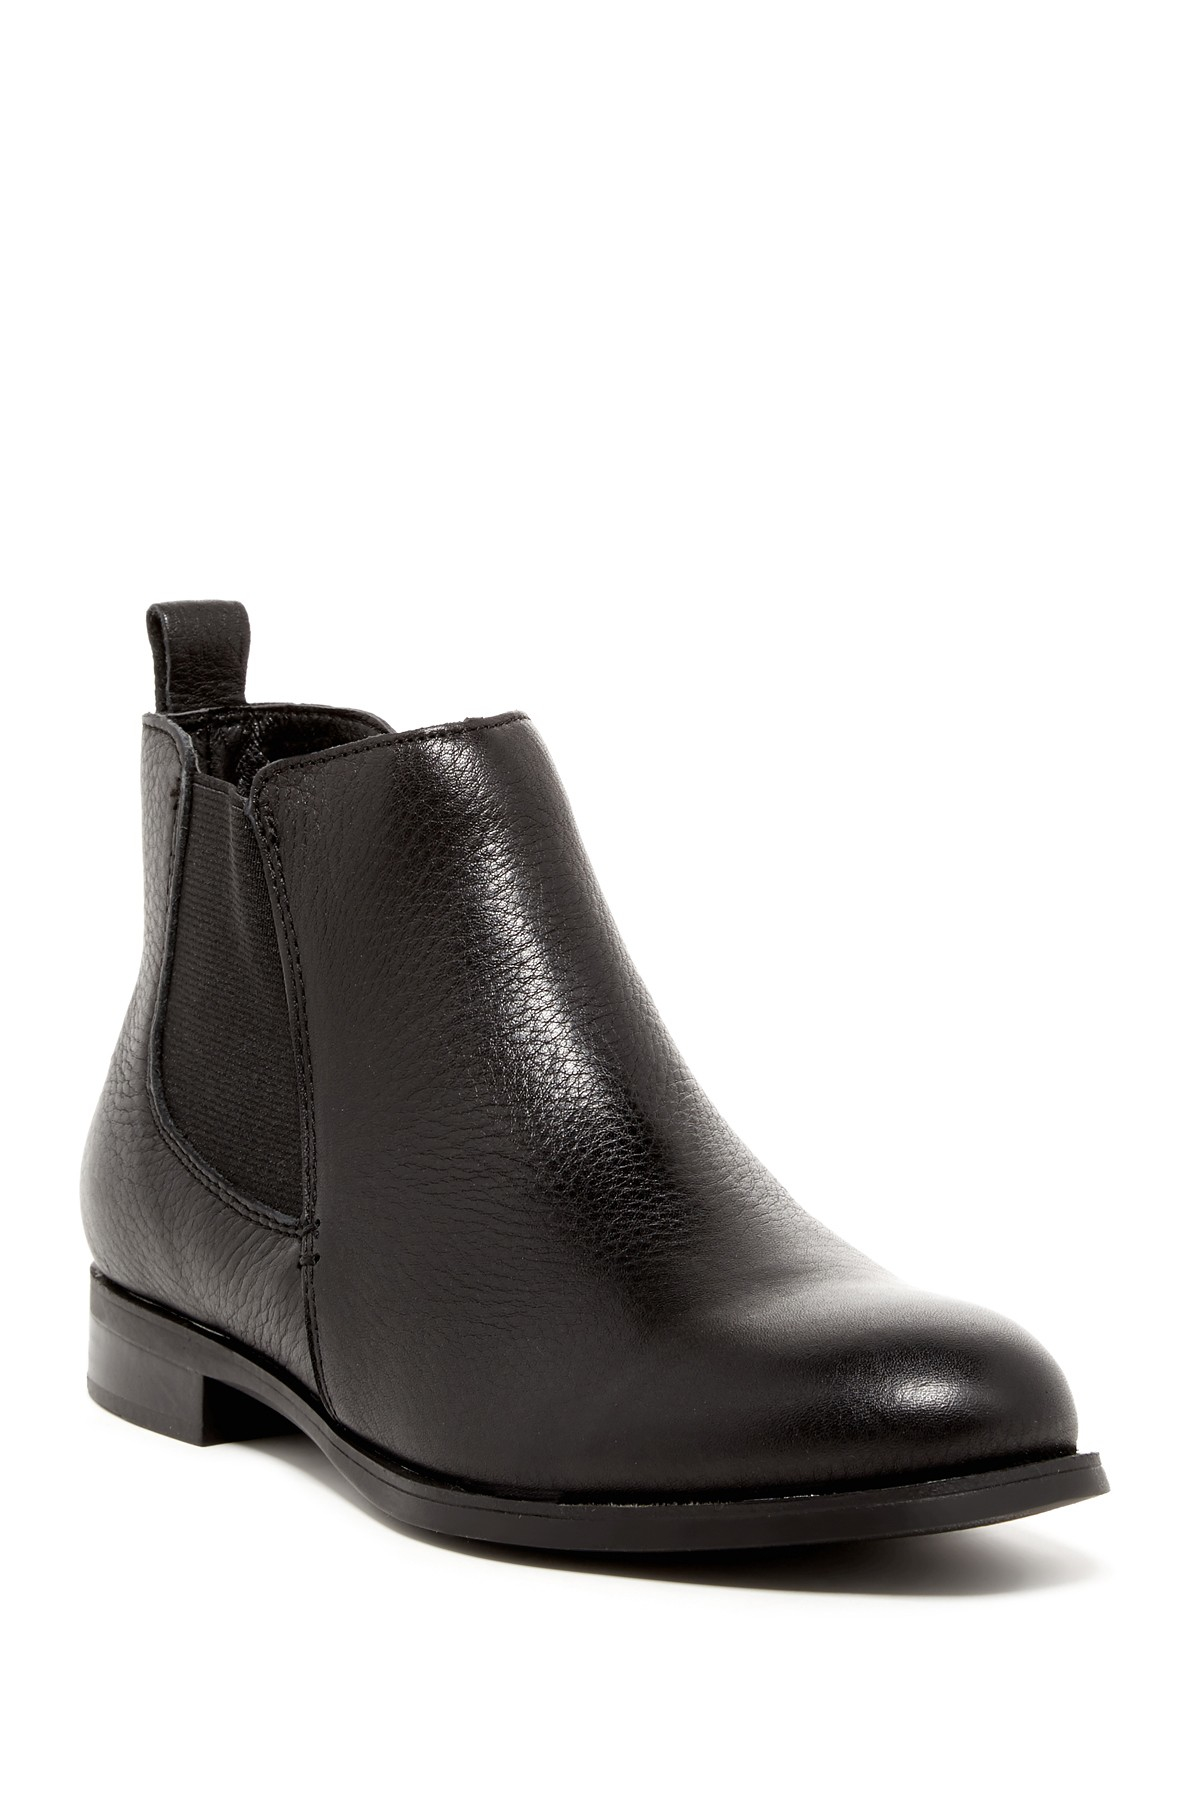 sperry top sider victory ankle boot in black lyst